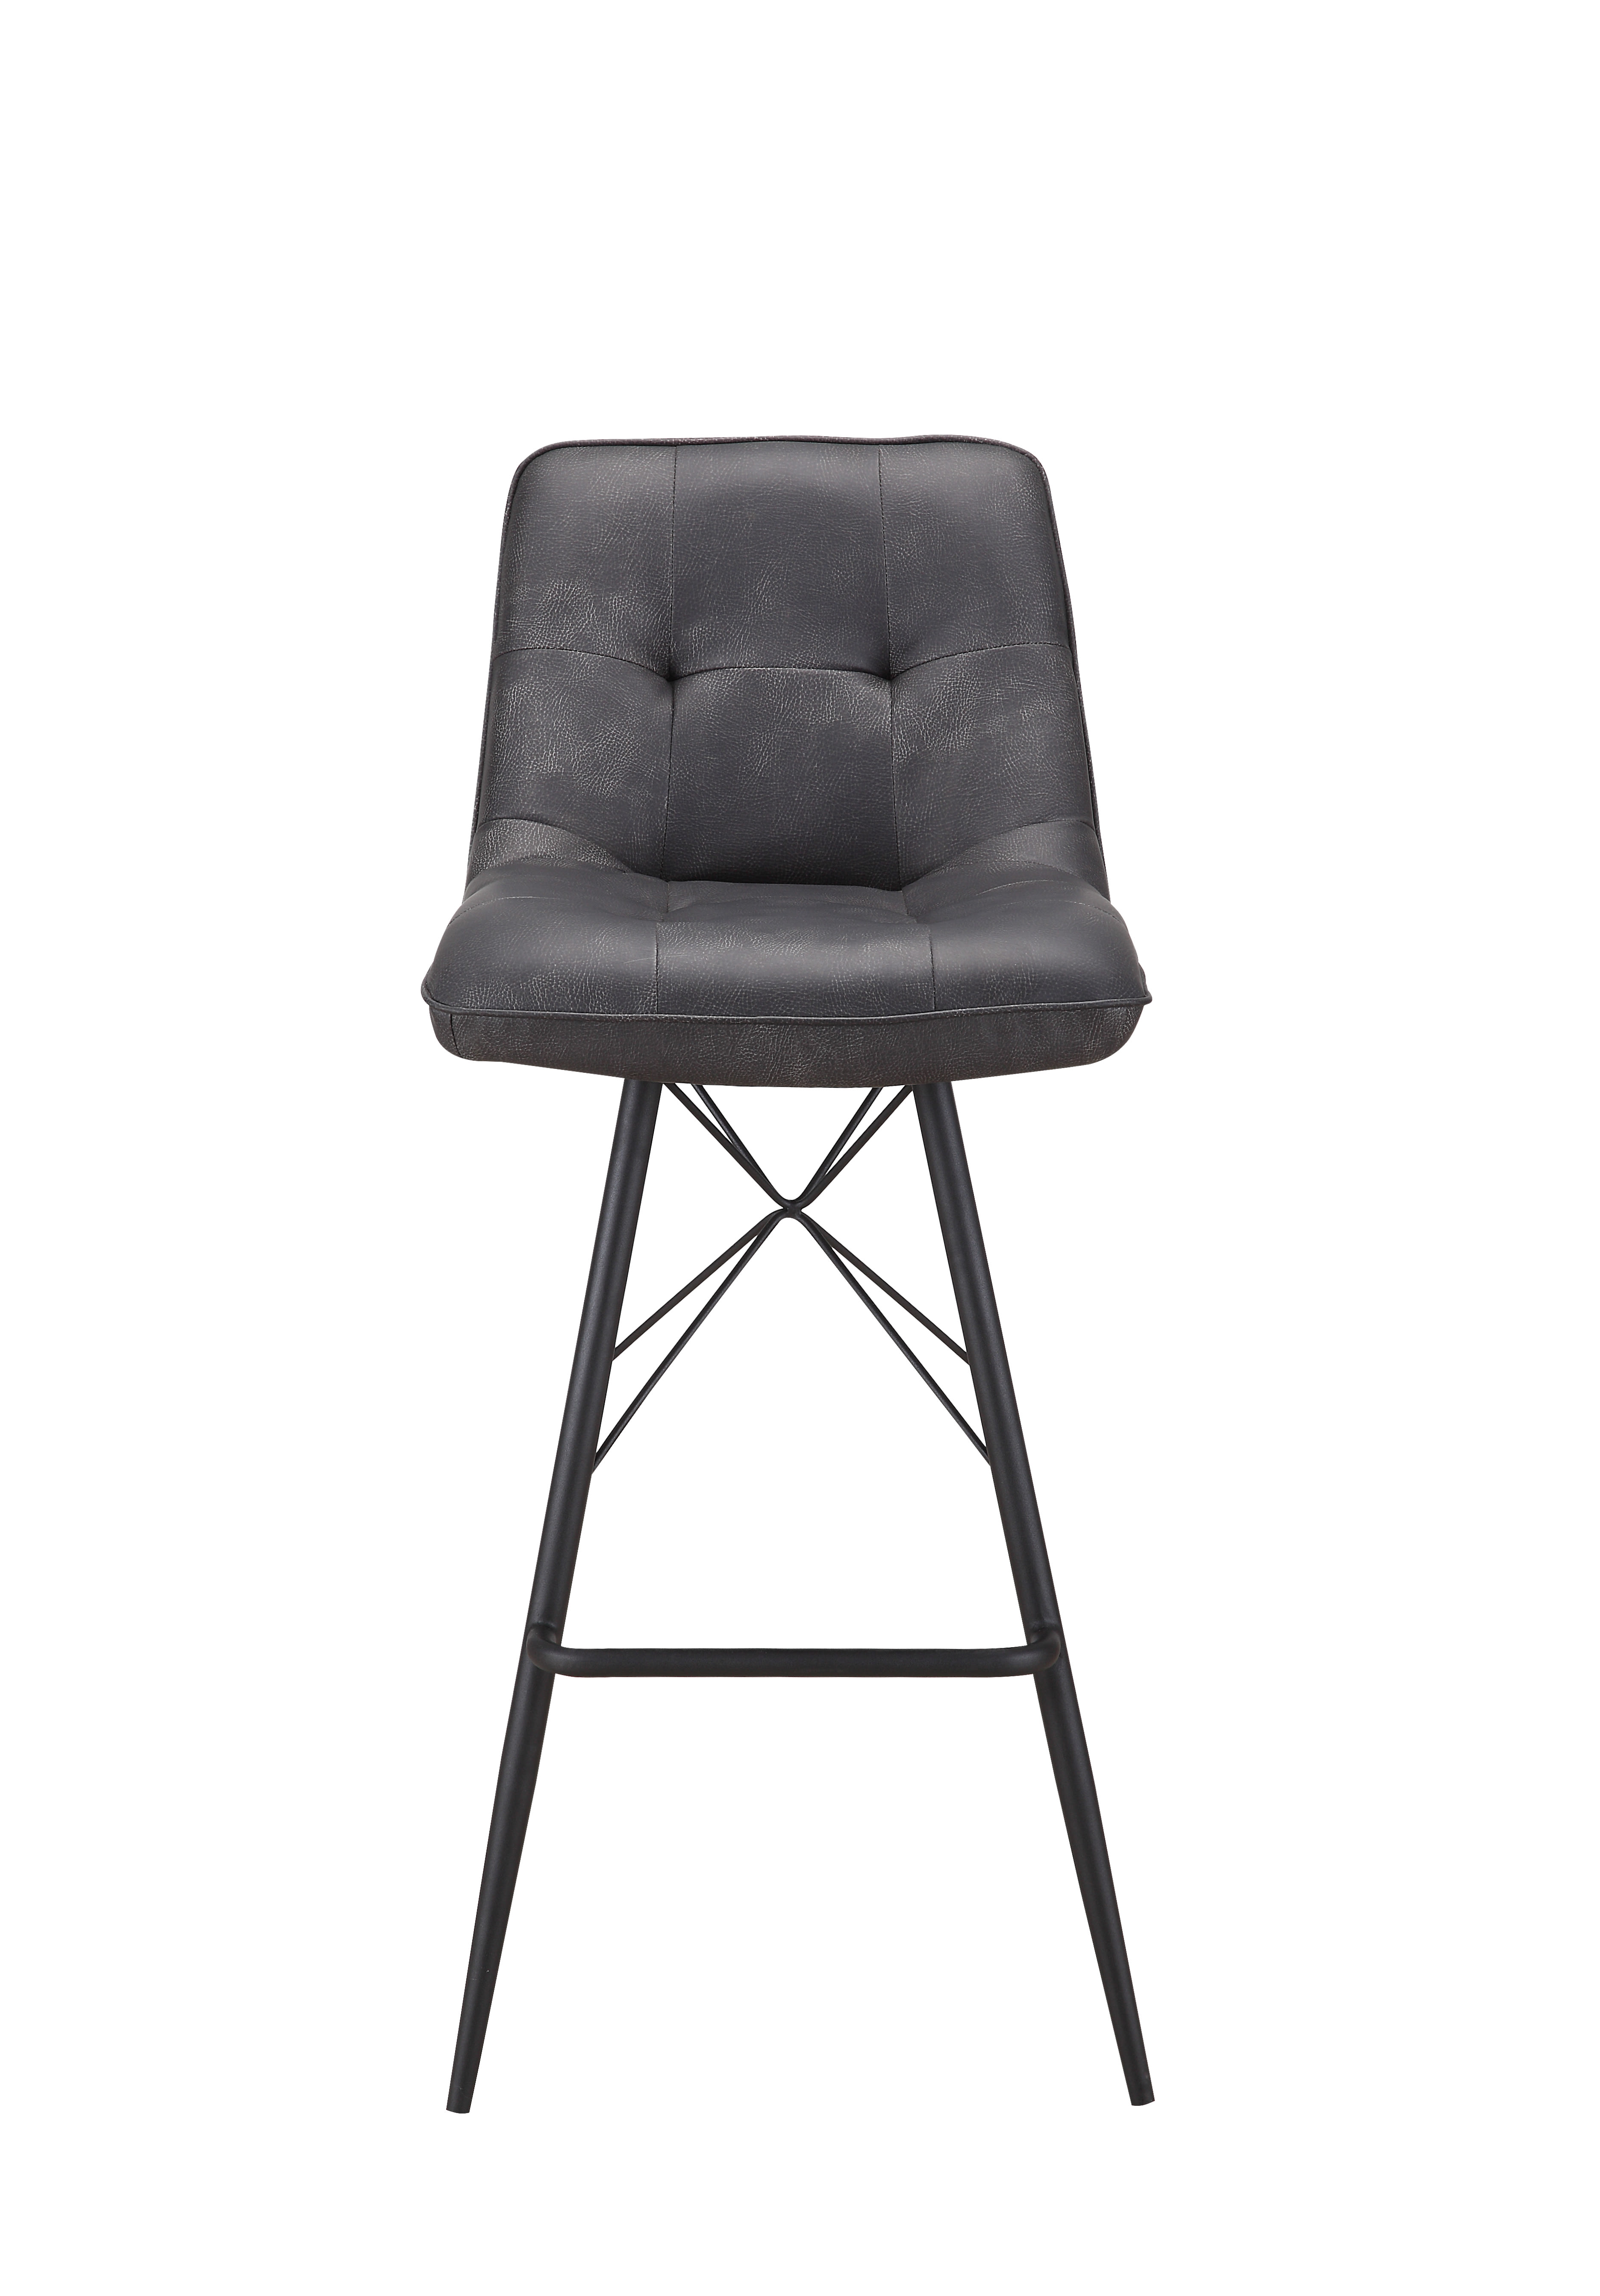 Terrific Moes Home Collection Stools Indoor Furniture Er 2031 Machost Co Dining Chair Design Ideas Machostcouk